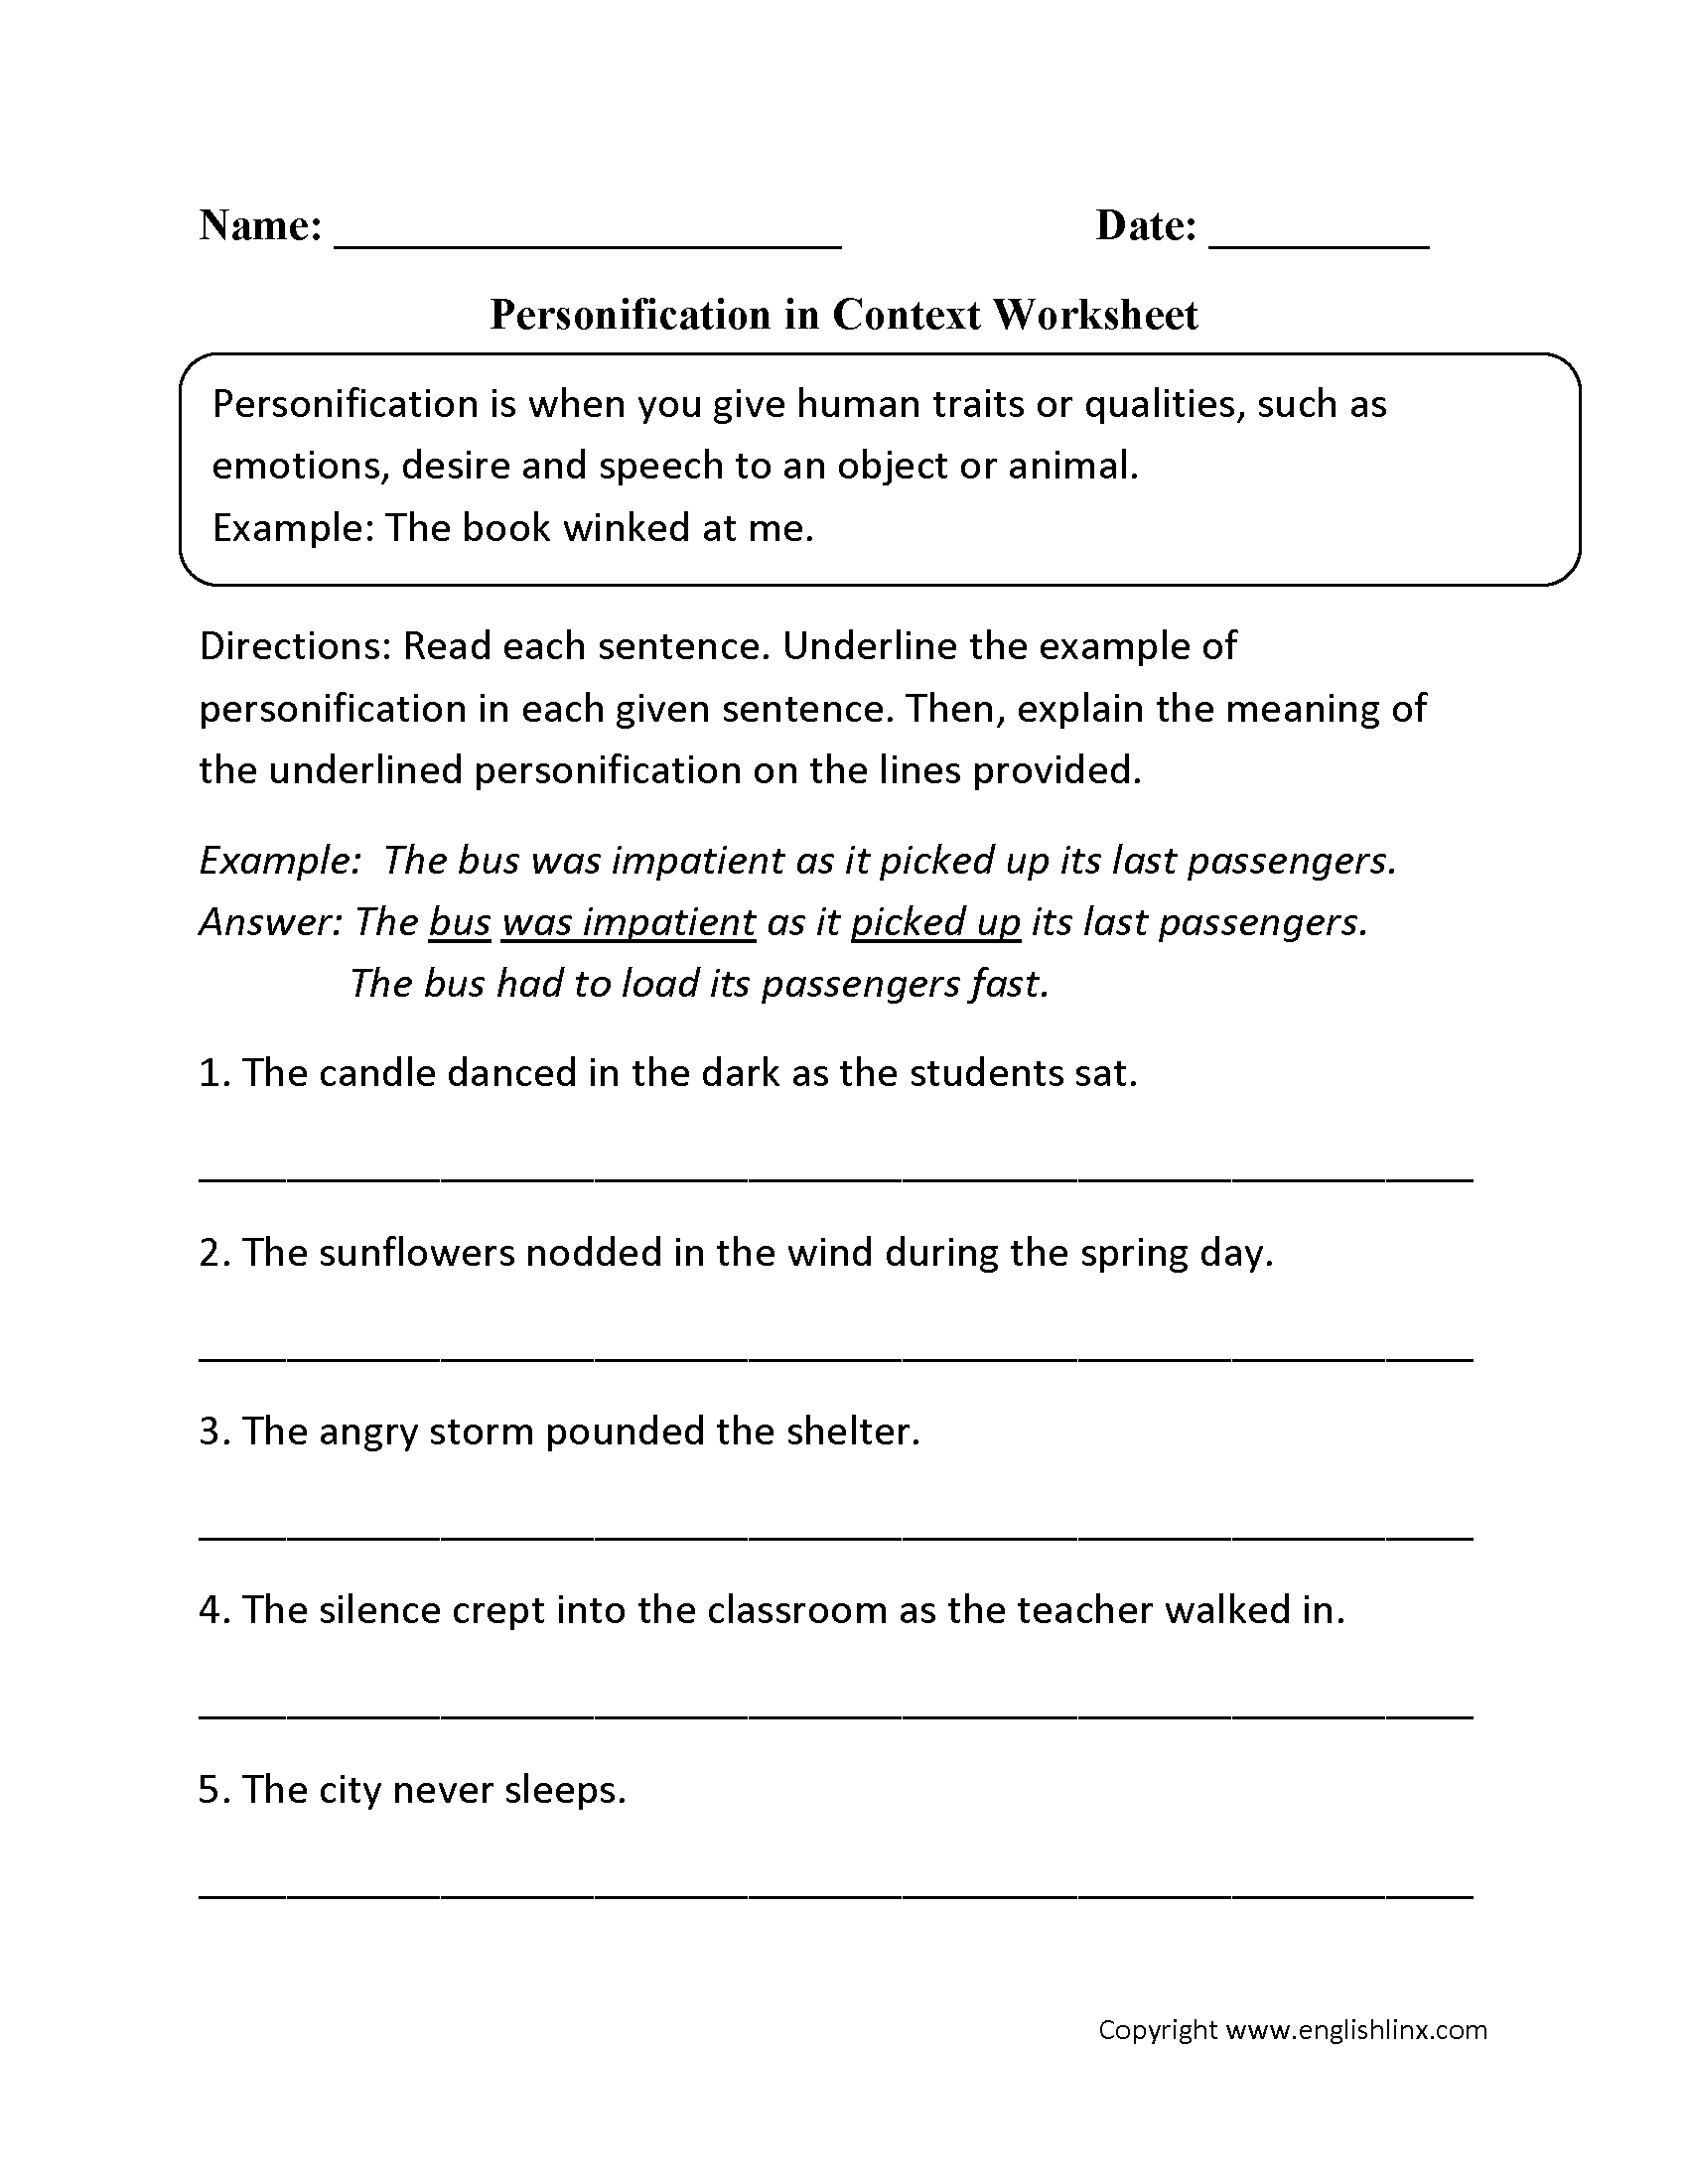 Worksheets Personification Worksheets figurative language worksheets personification worksheets